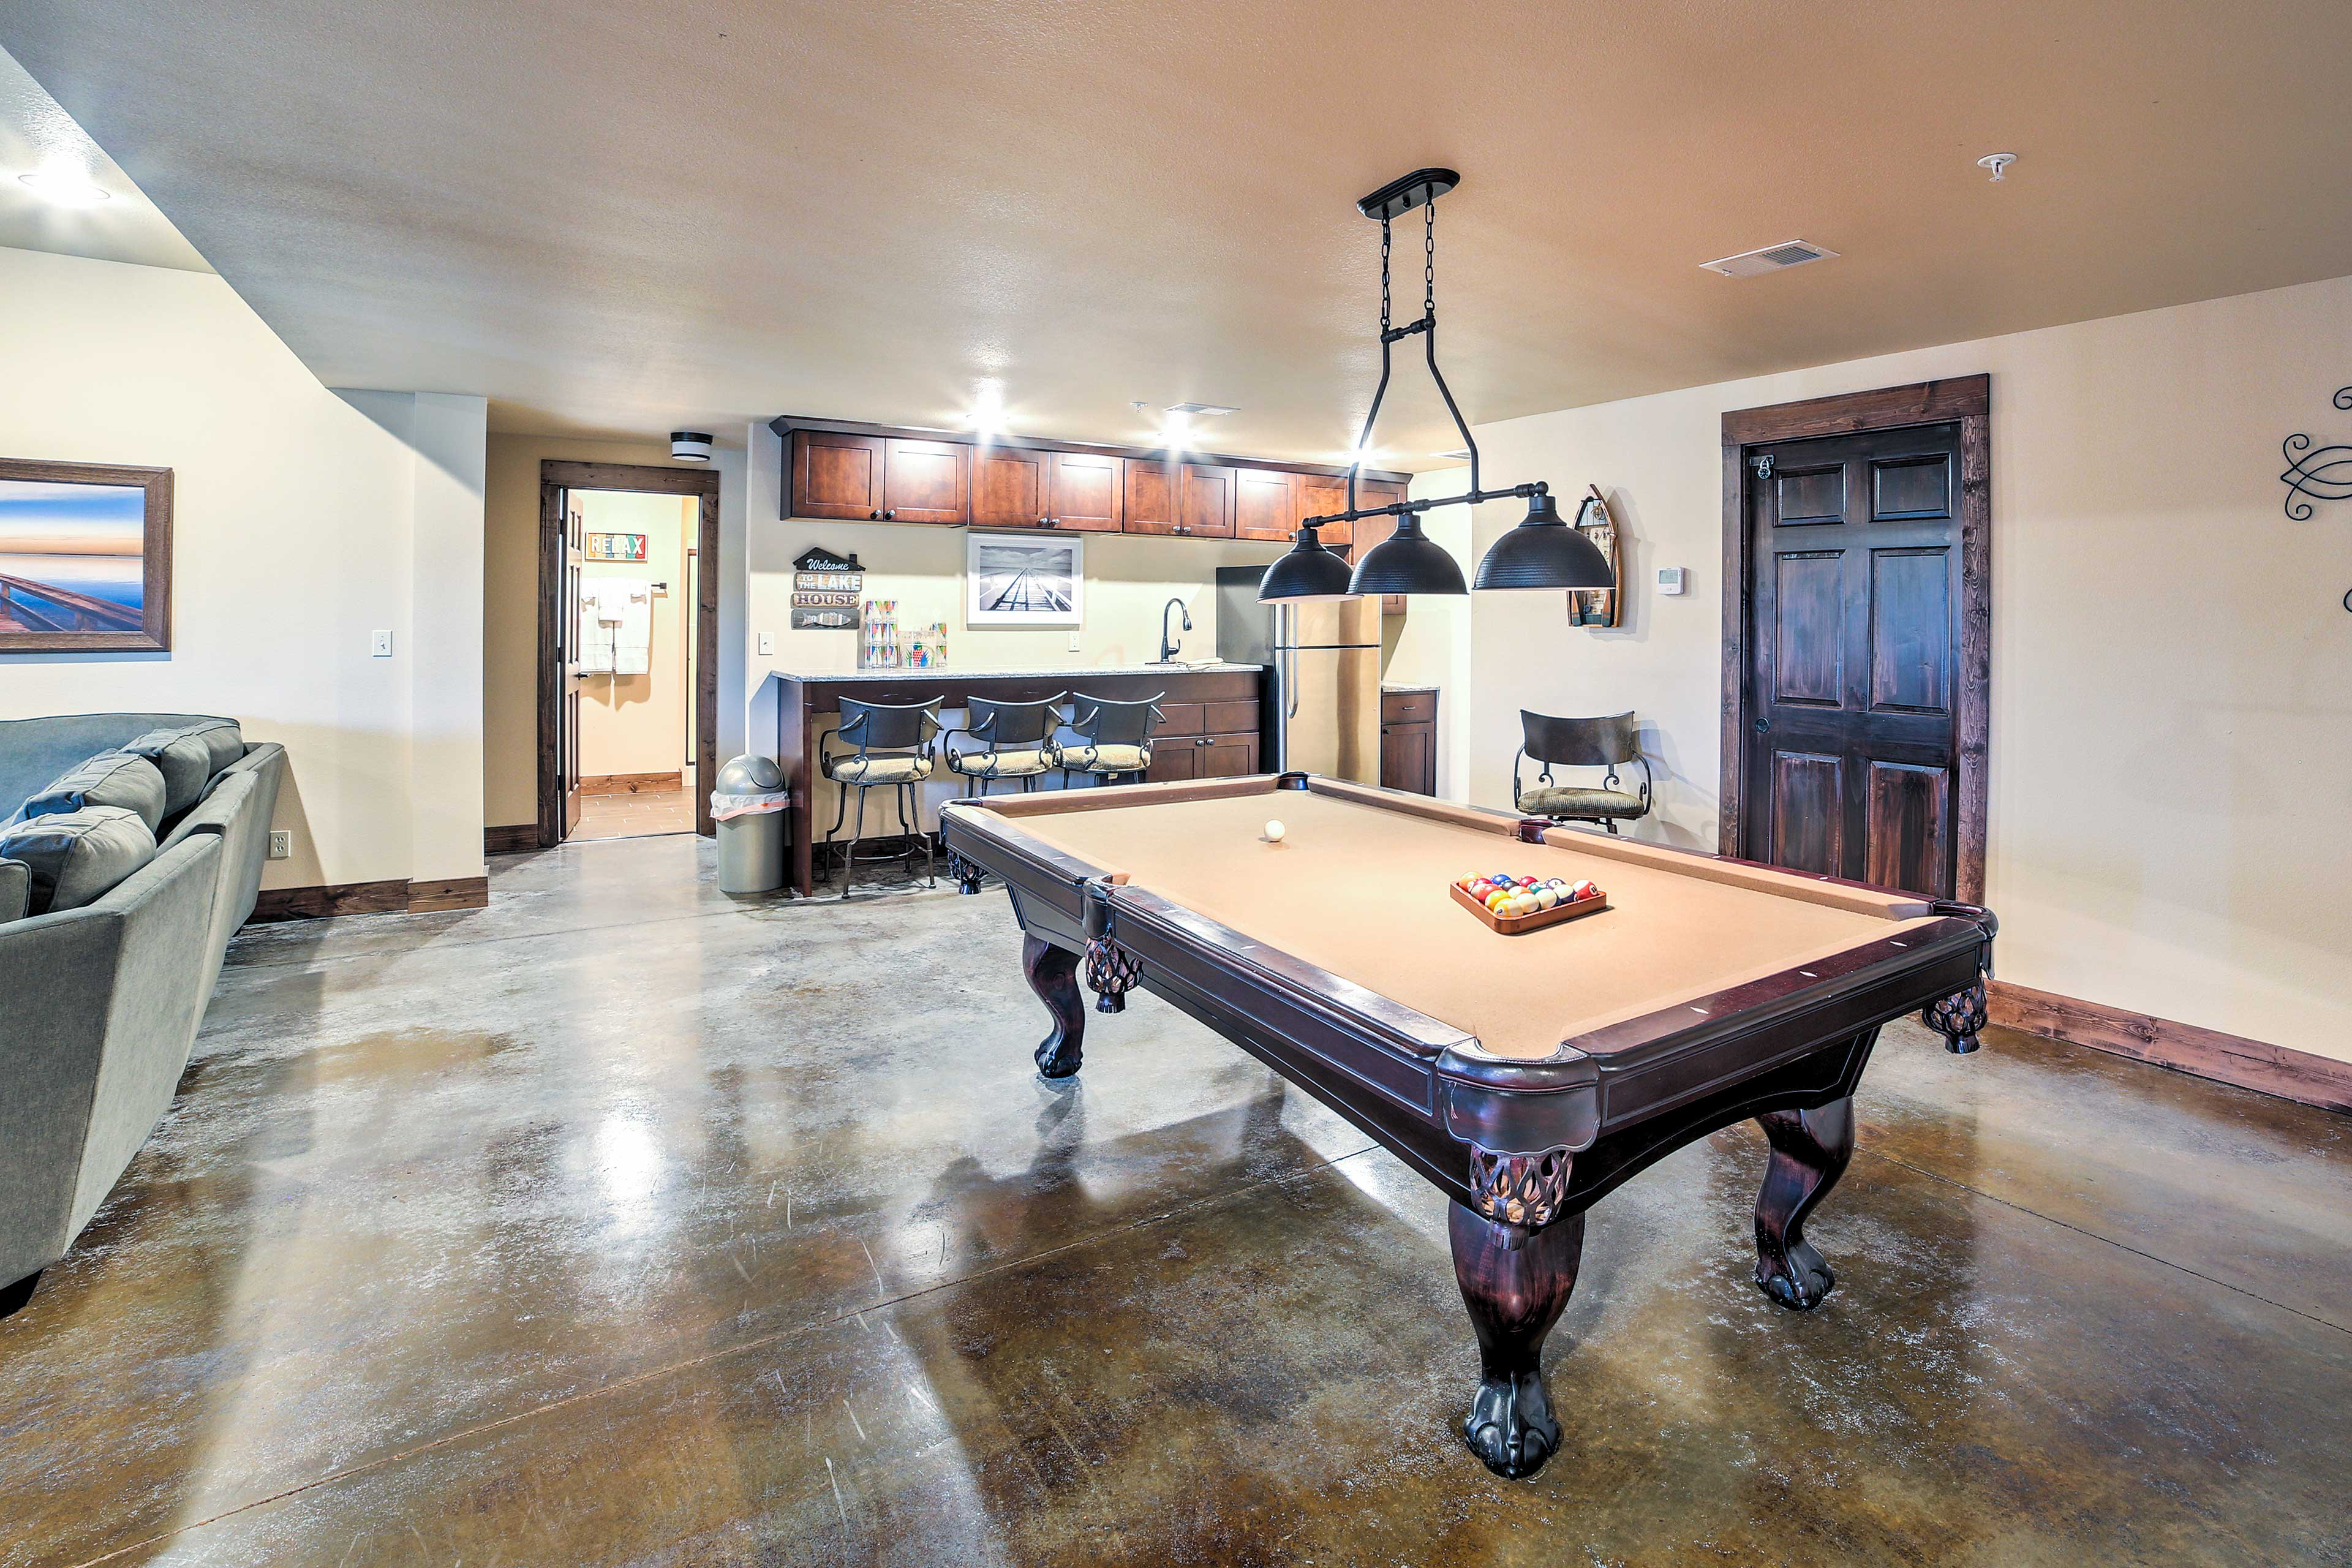 Challenge your travel companions to a game of pool in the game room!